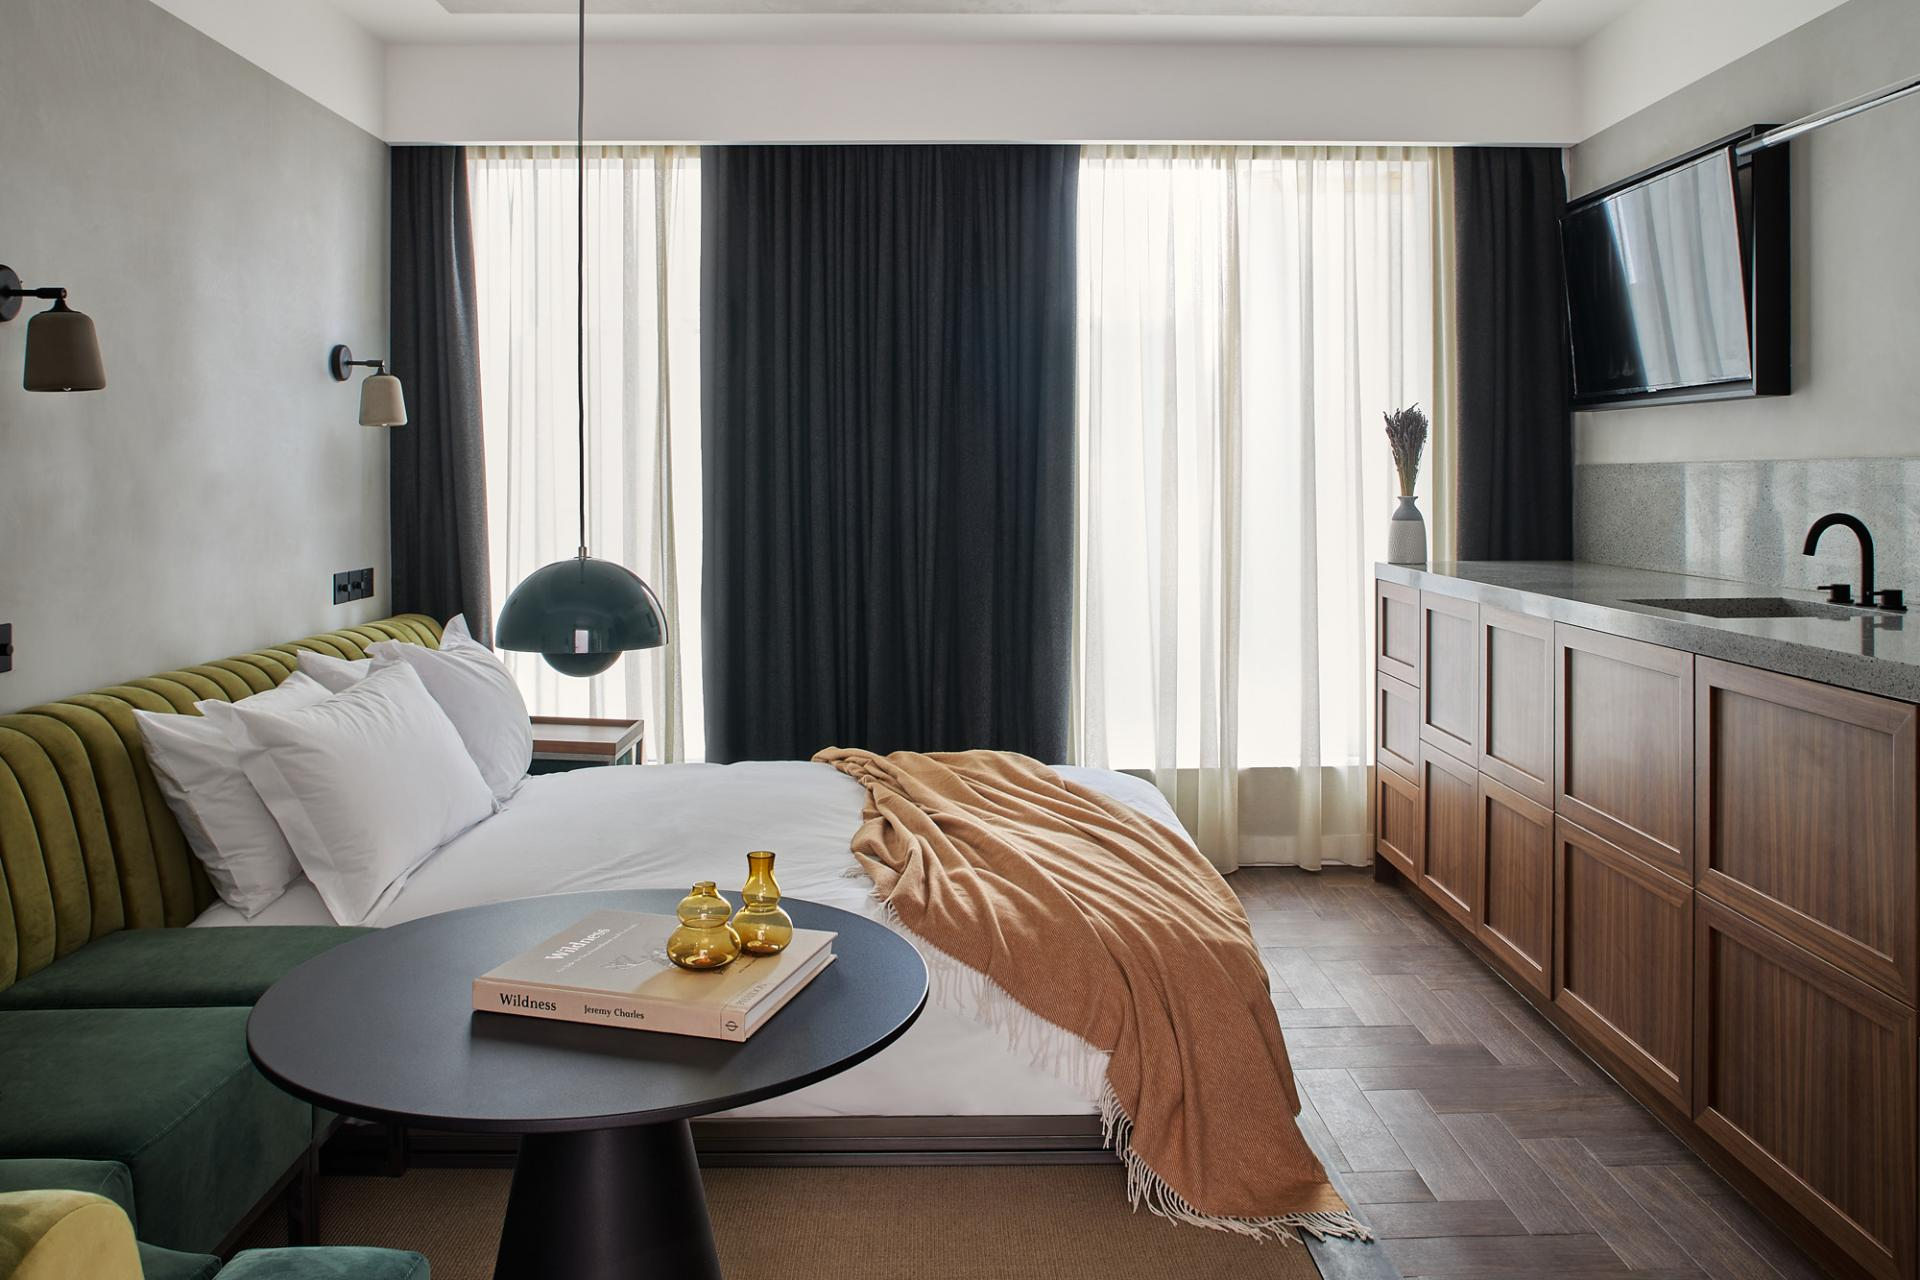 Sophisticated furnishings in the studio apartment with neutral tones